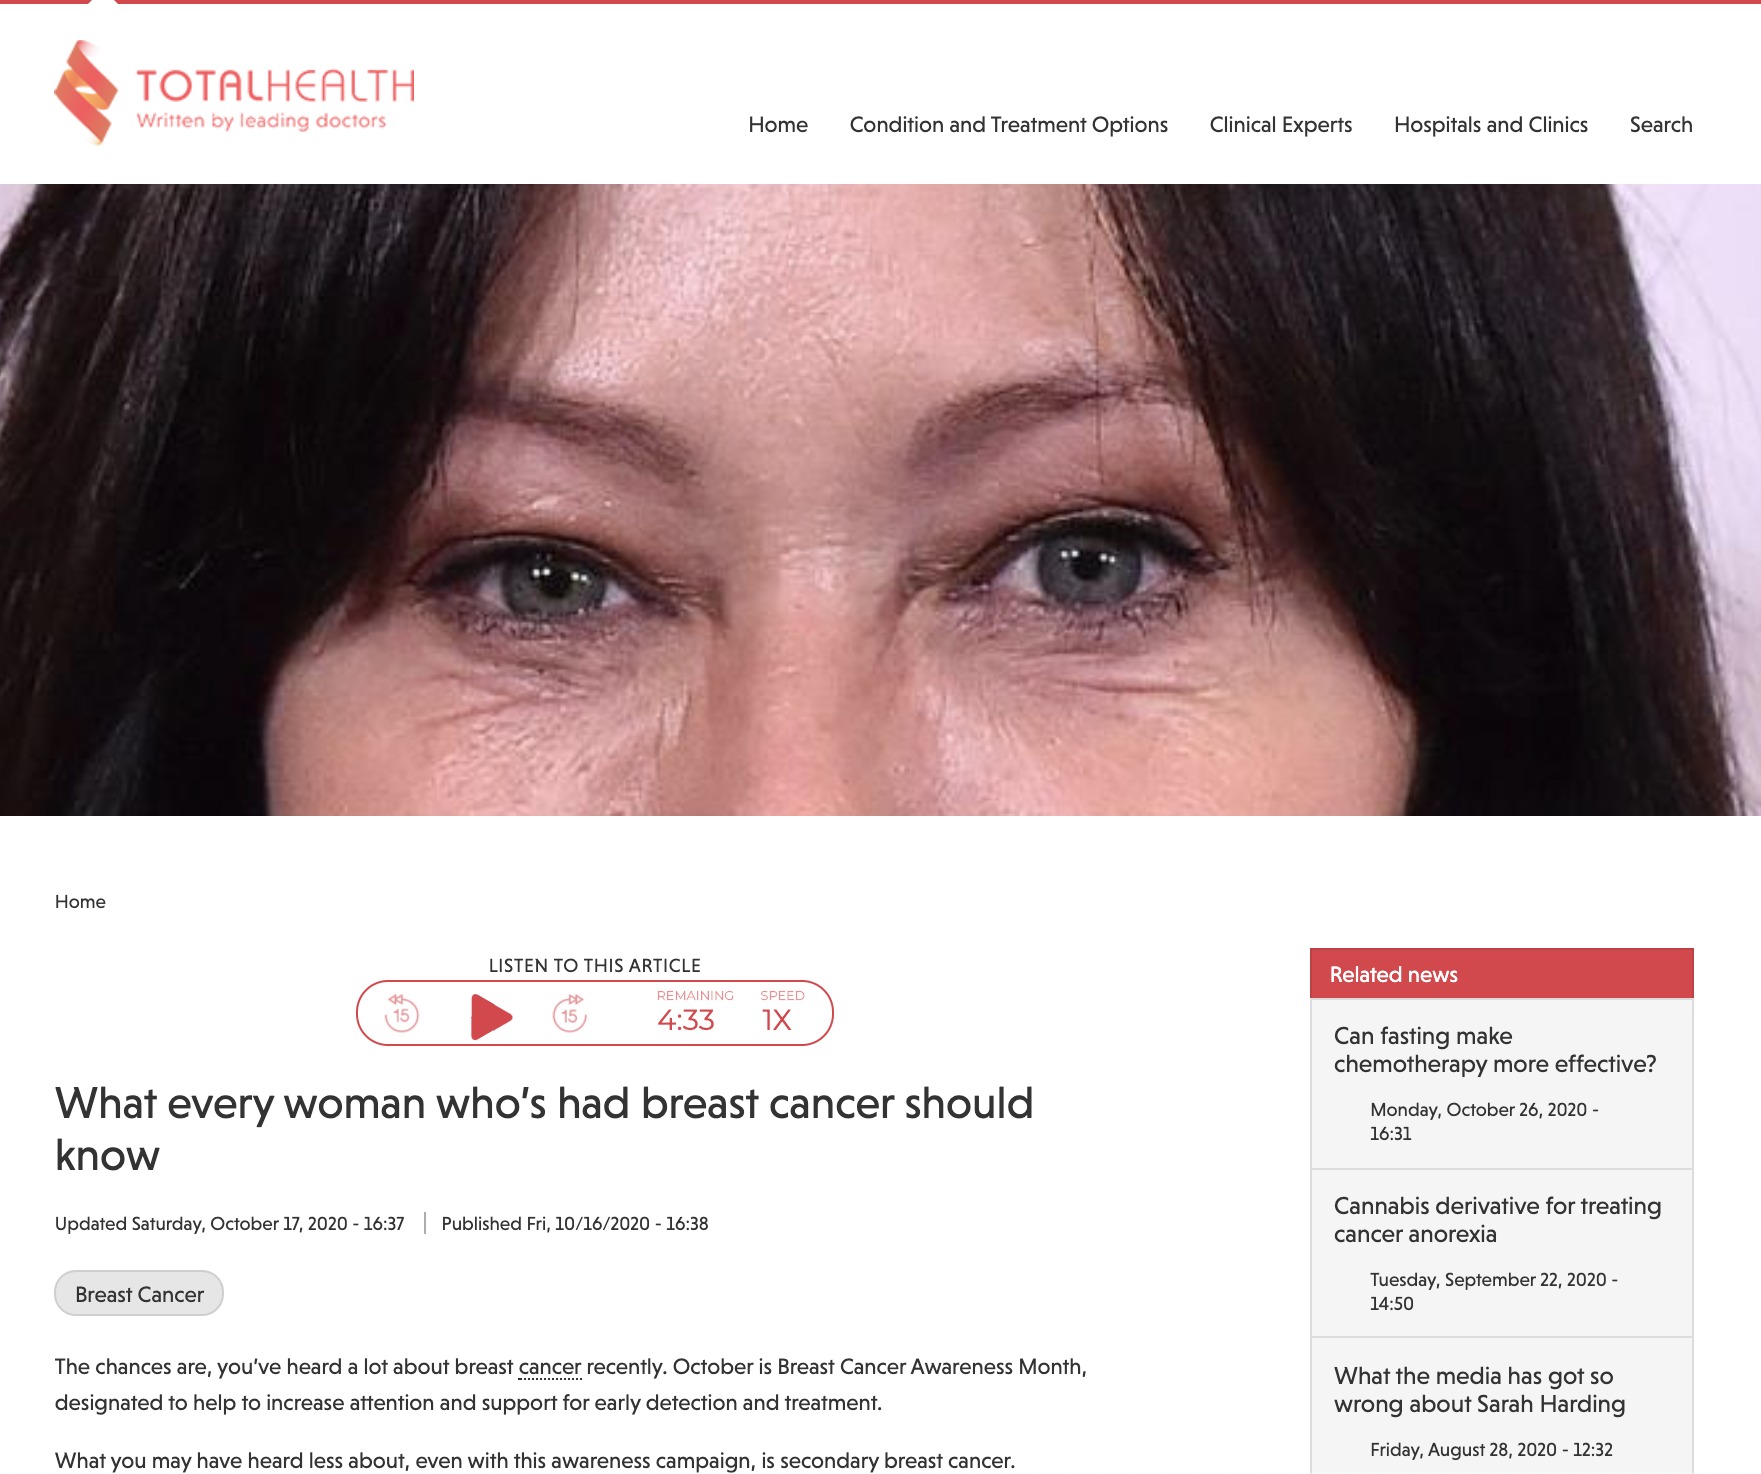 Woman's Eyes in Screenshot in Total Health